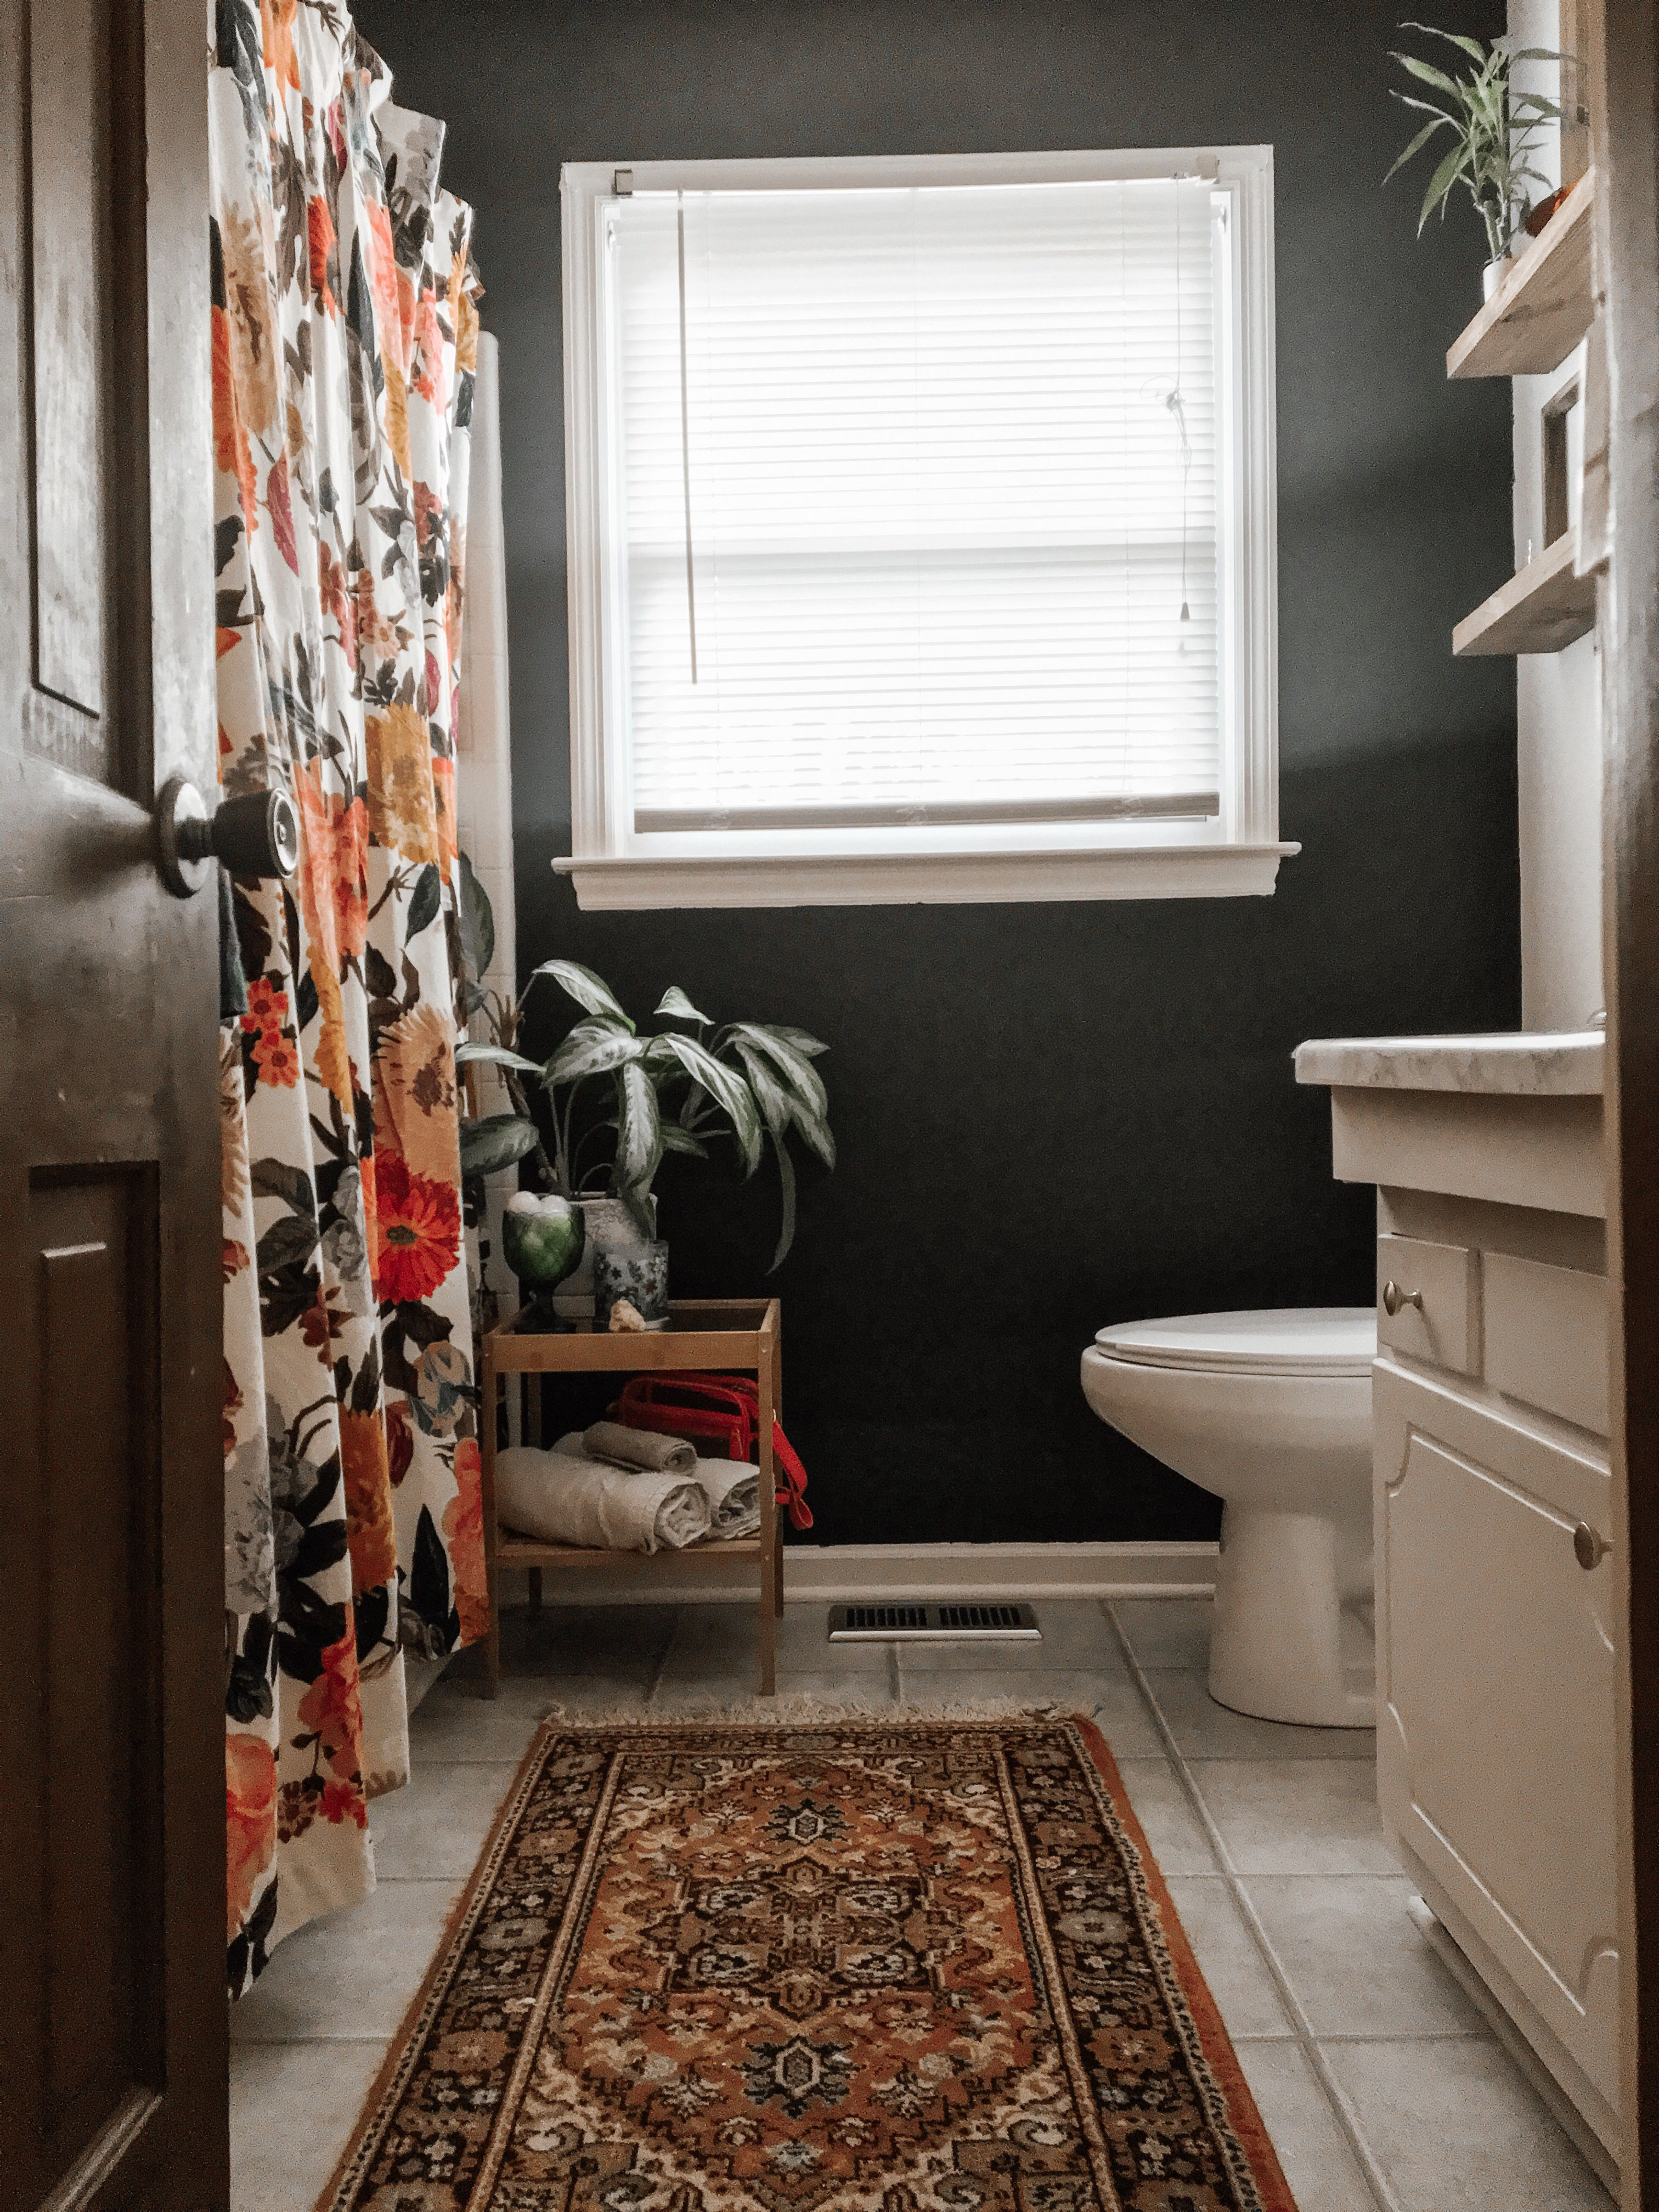 Black Wall In Bathroom With Boho Orange And Anthropologie Shower